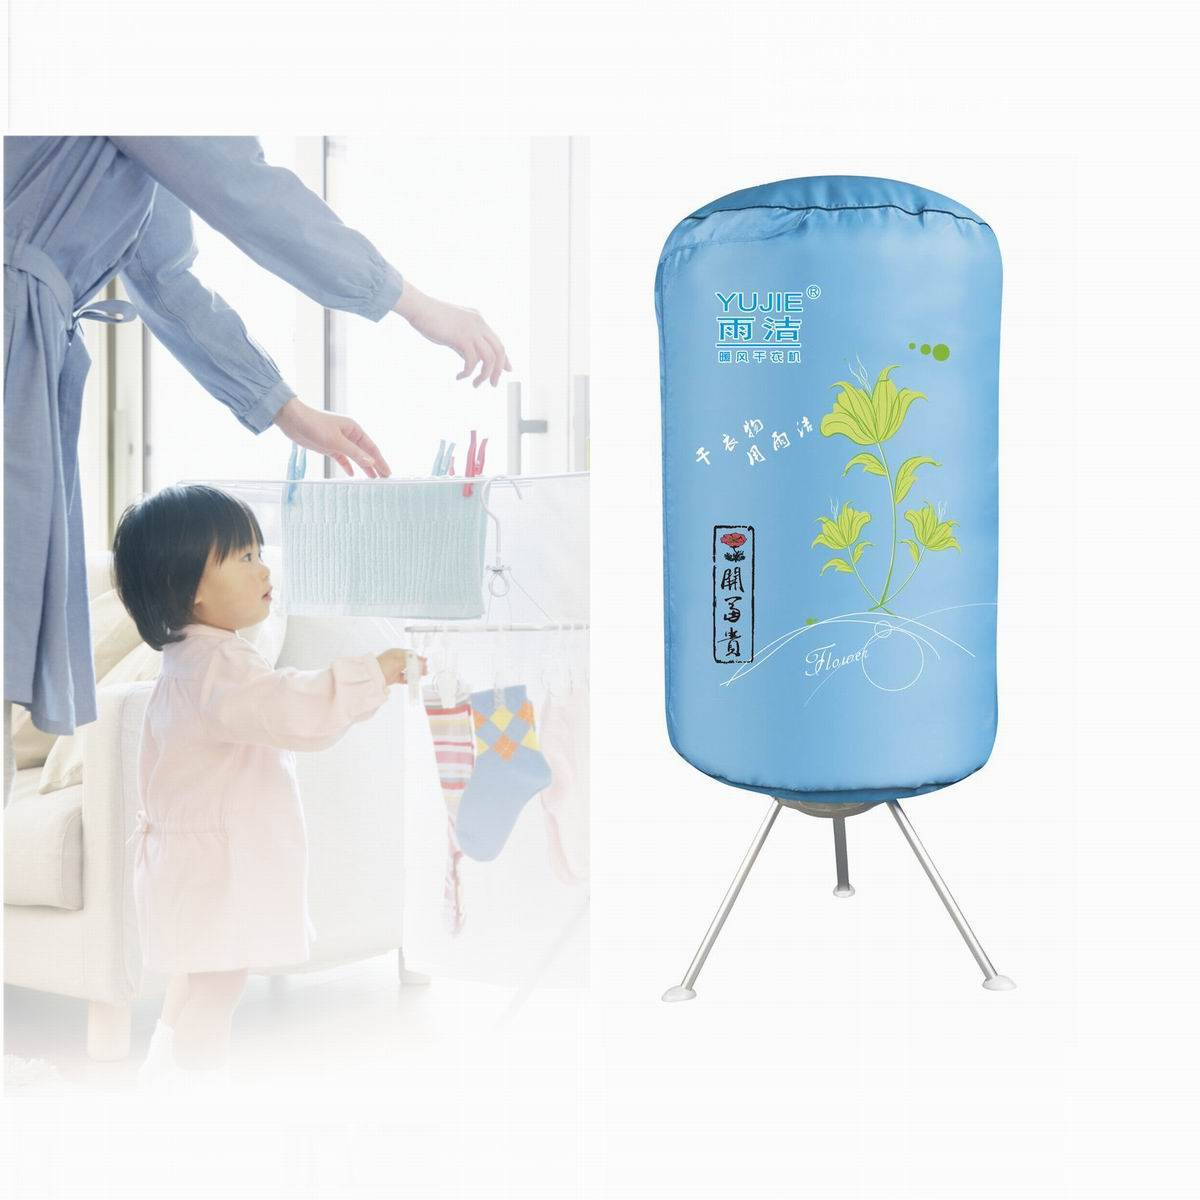 Electric portable clothes dryer, cloth dryer